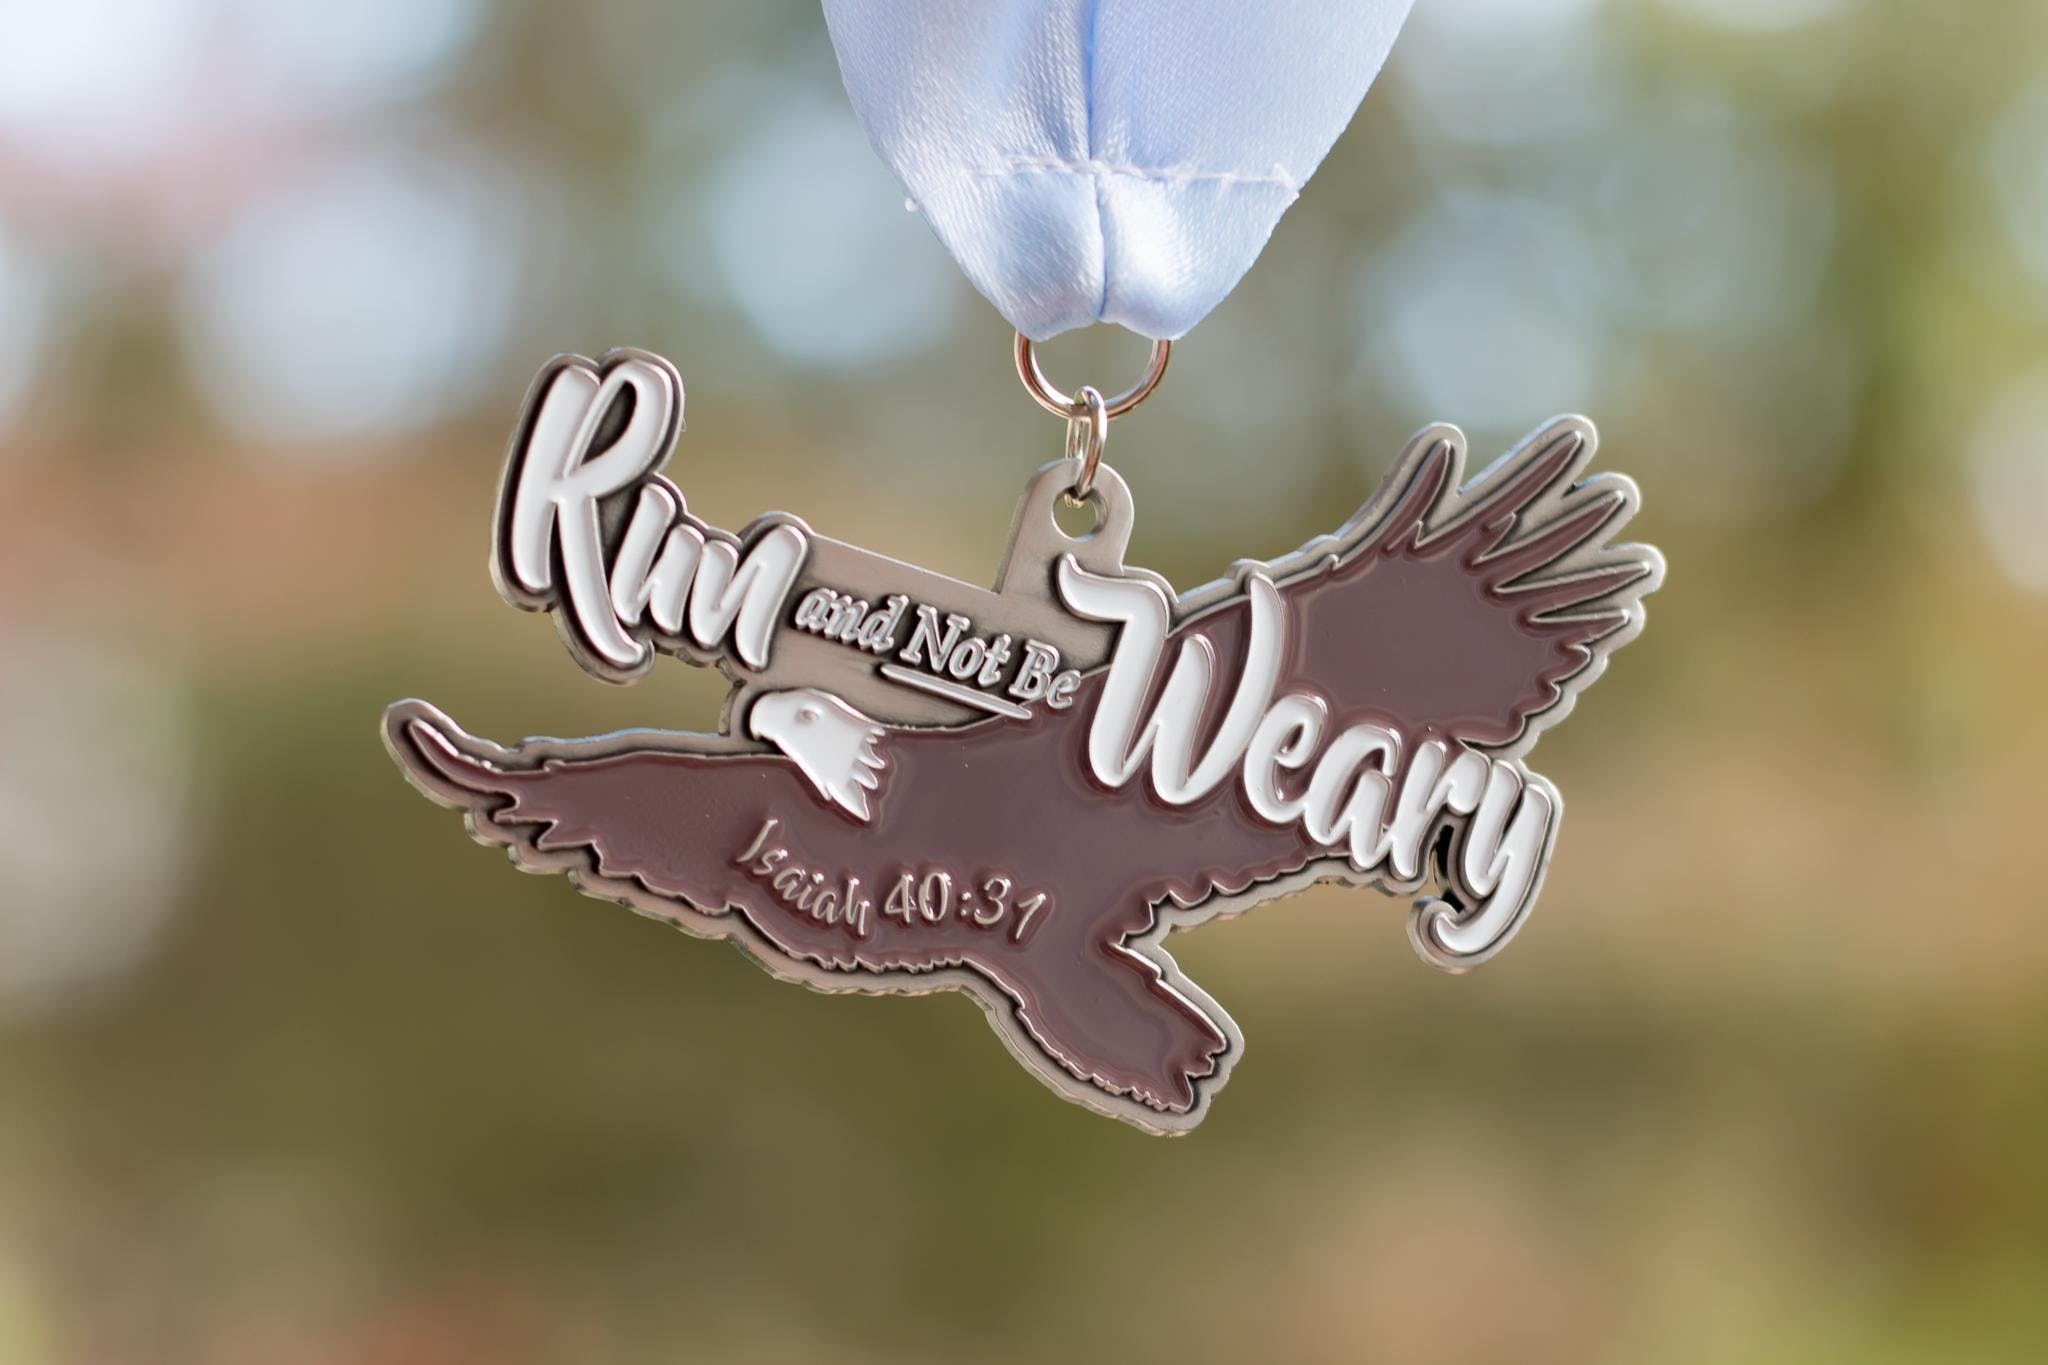 2019 The Run and Not Be Weary 1 Mile, 5K, 10K, 13.1, 26.2 - Rochester